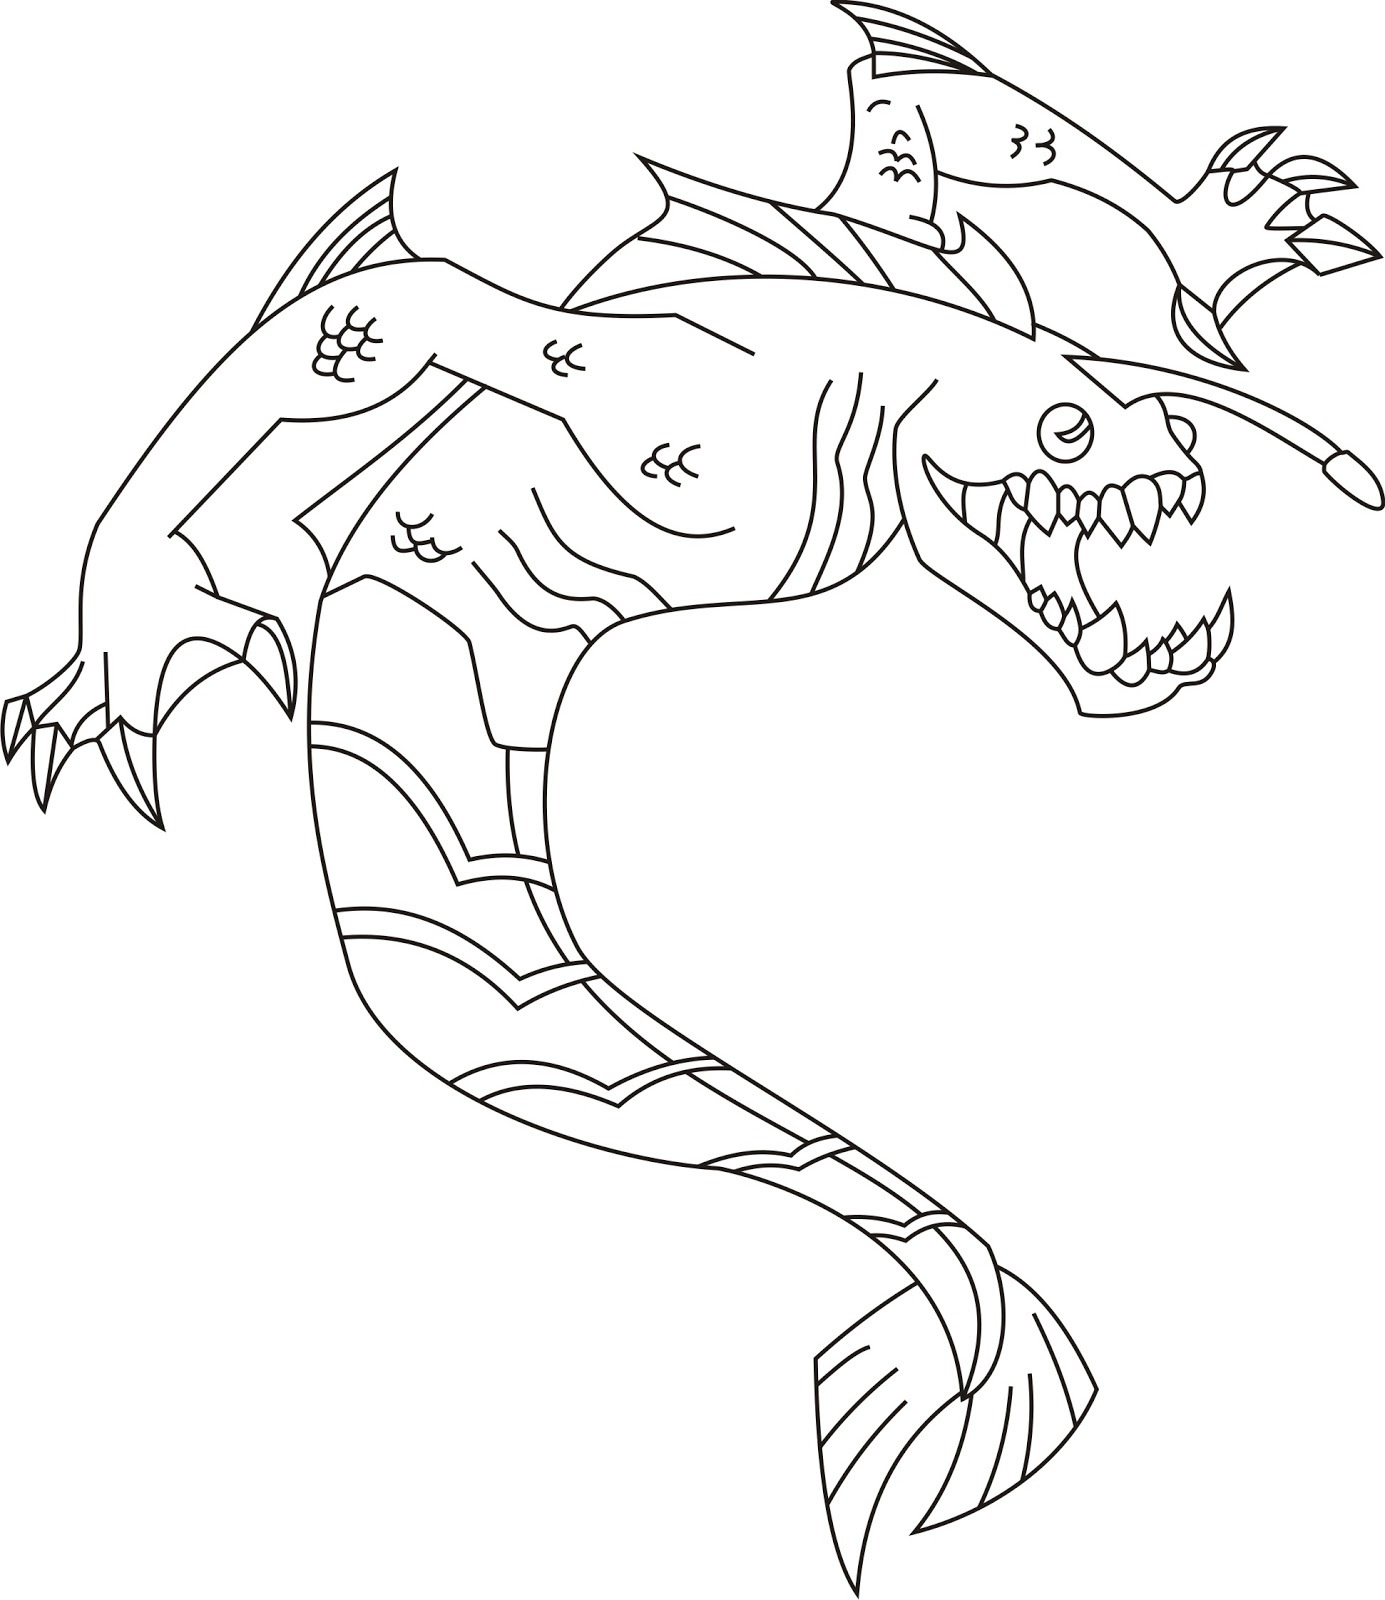 pita ten coloring pages - photo#13